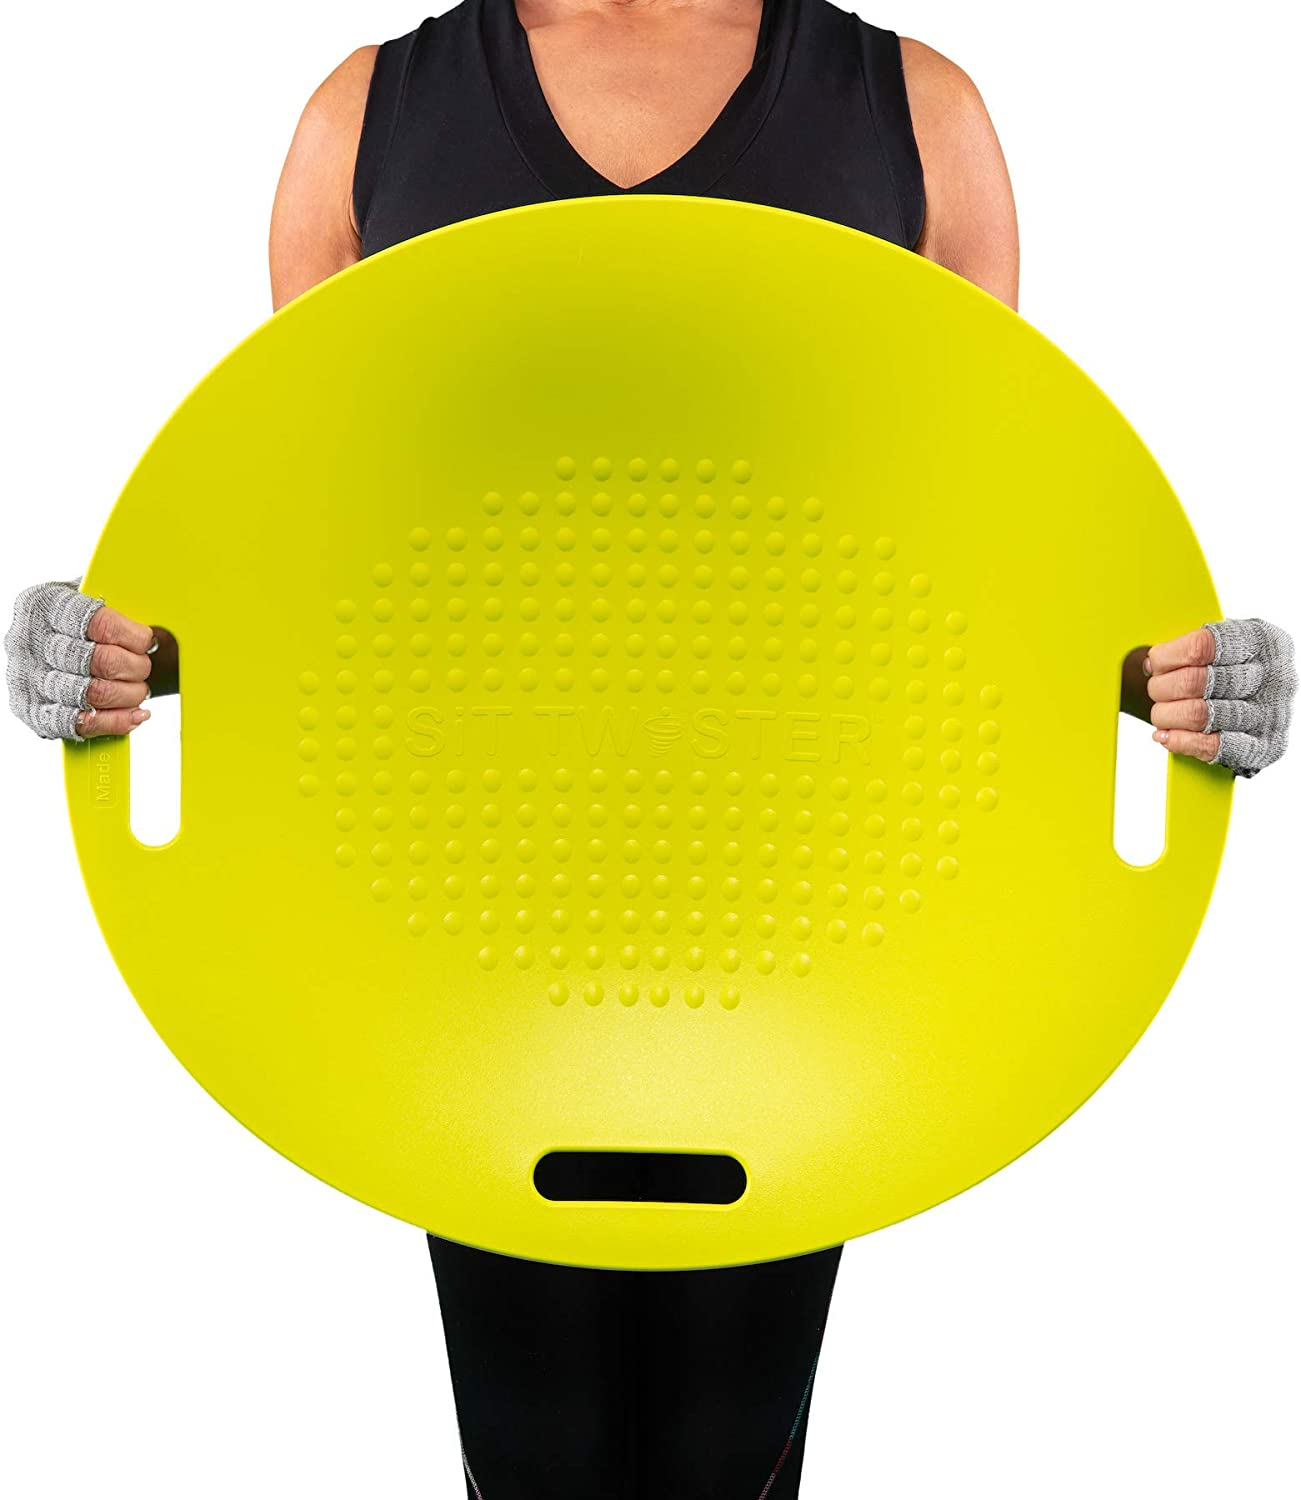 SIT TWISTER Exercise Twist Year-end annual account Sales results No. 1 Disc Strength Improve Posture - Core